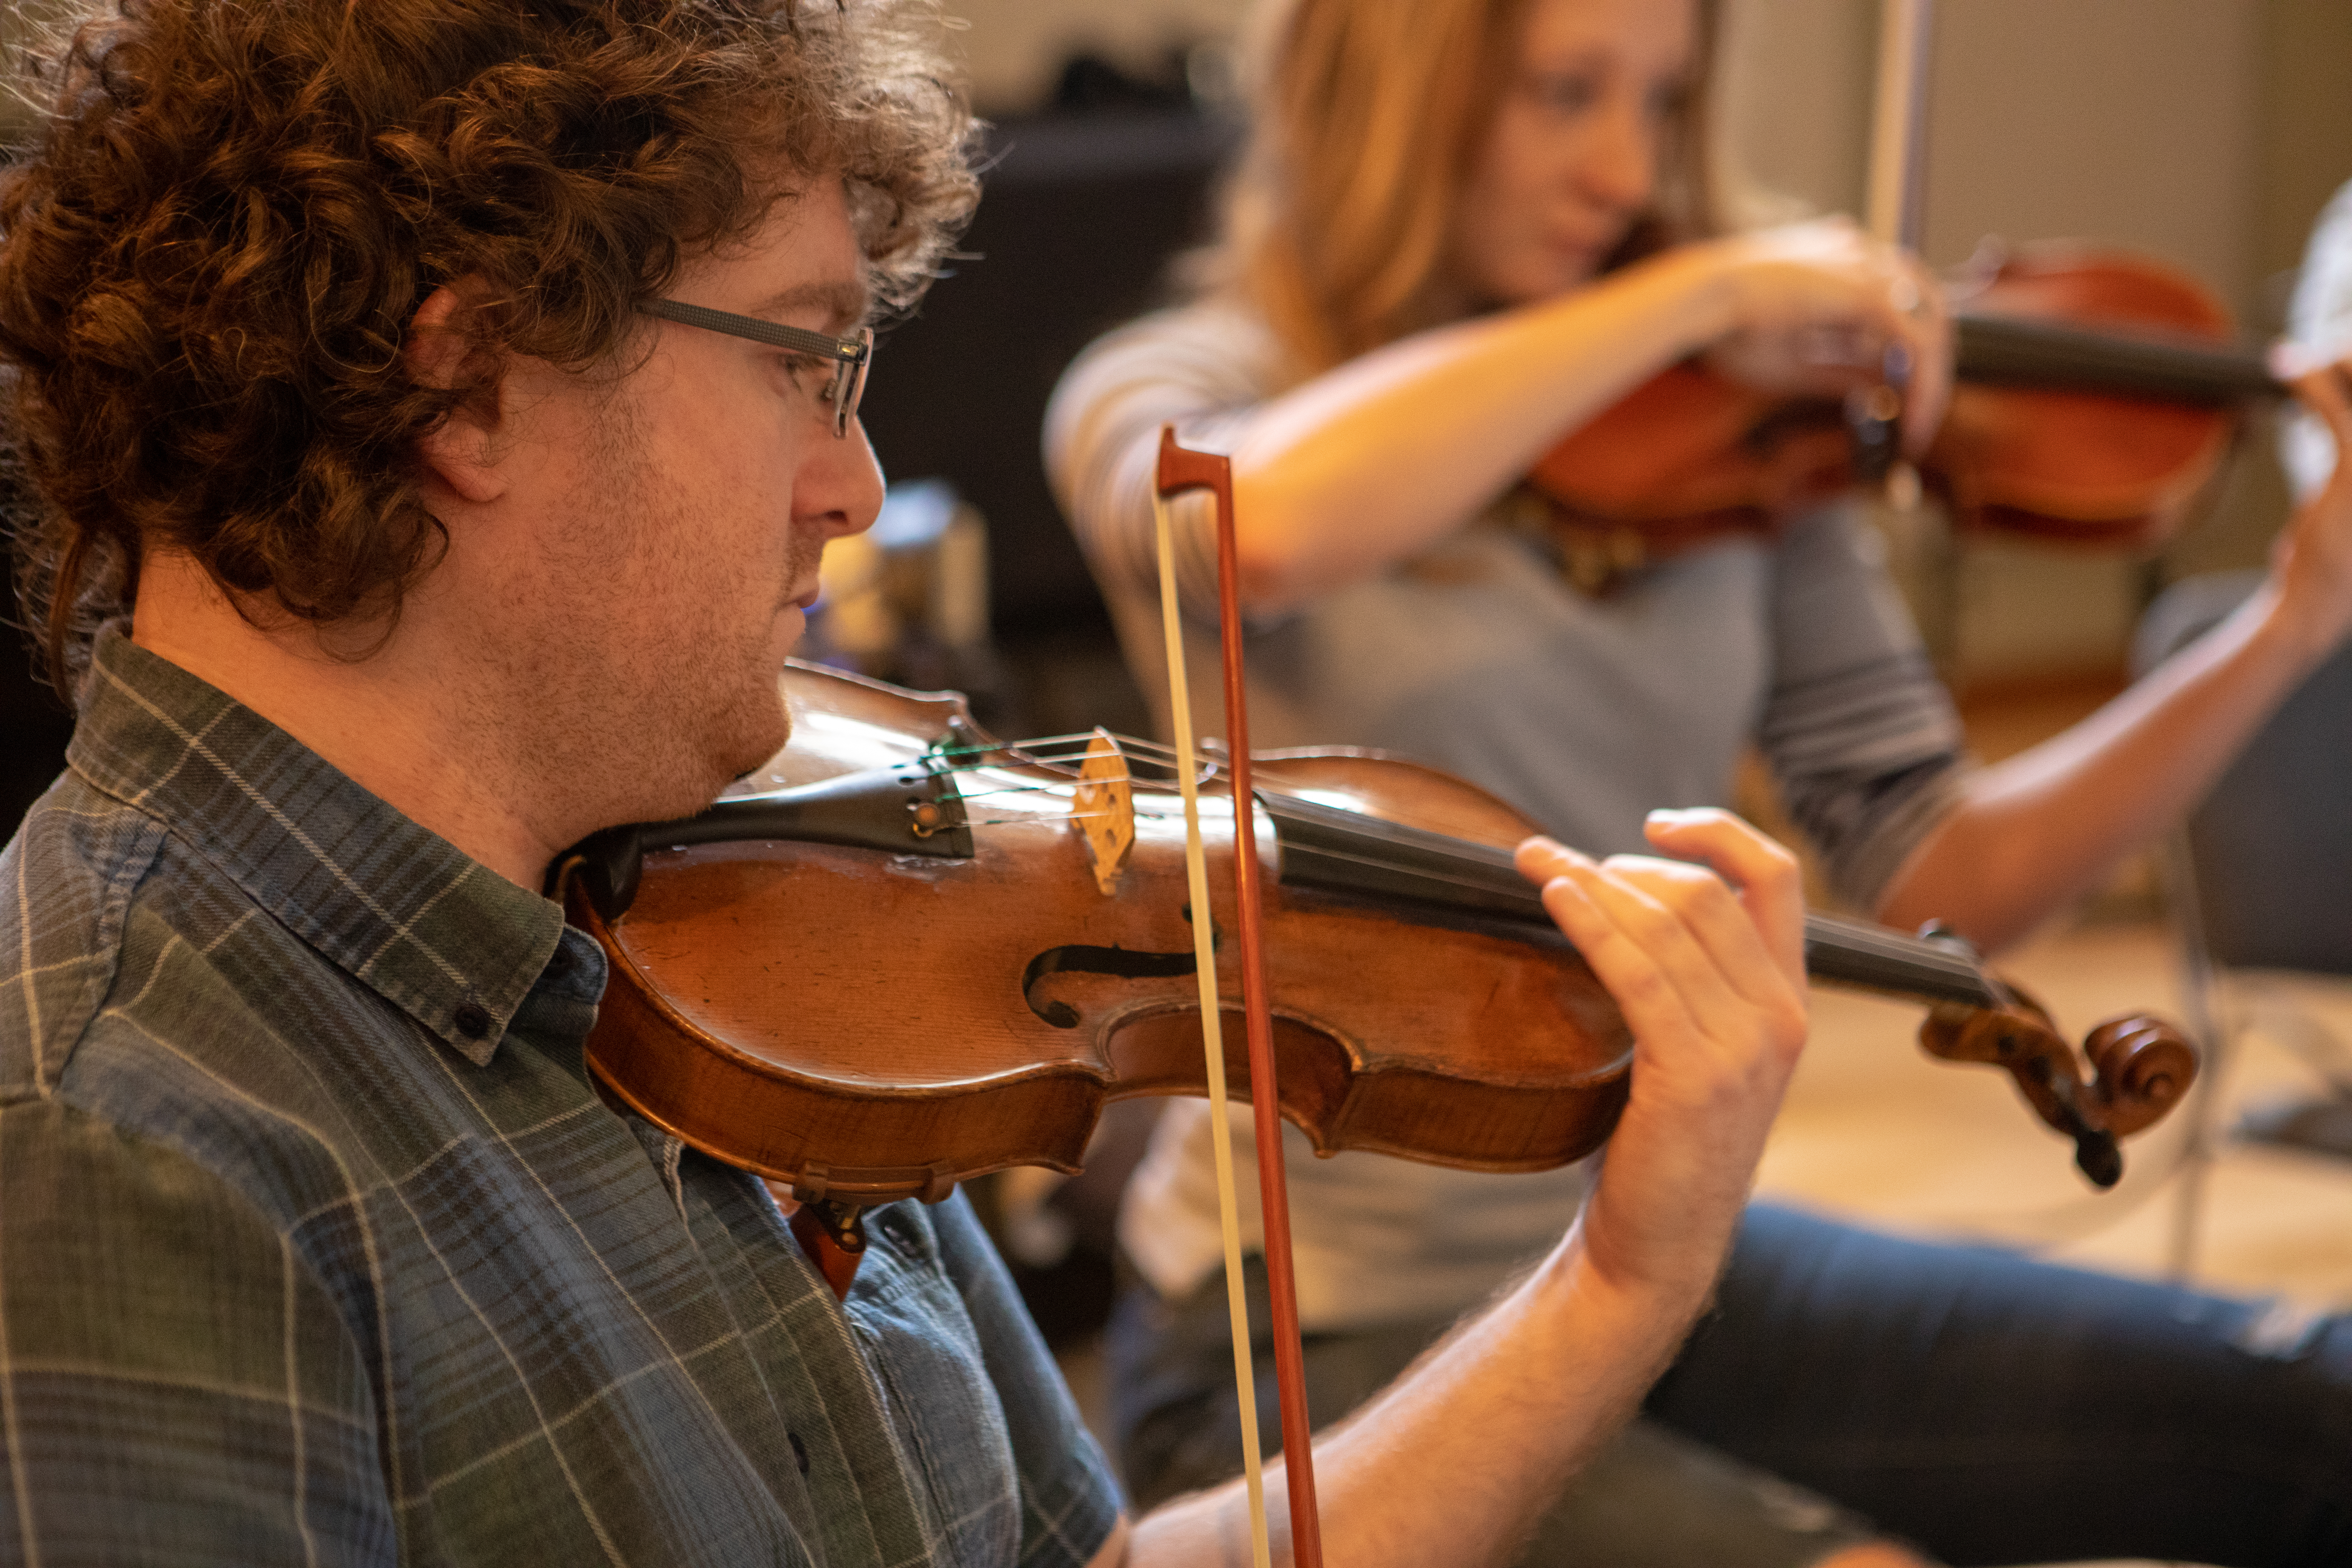 Strings Day for The Love Bugs score, Tom Yaron, violinist